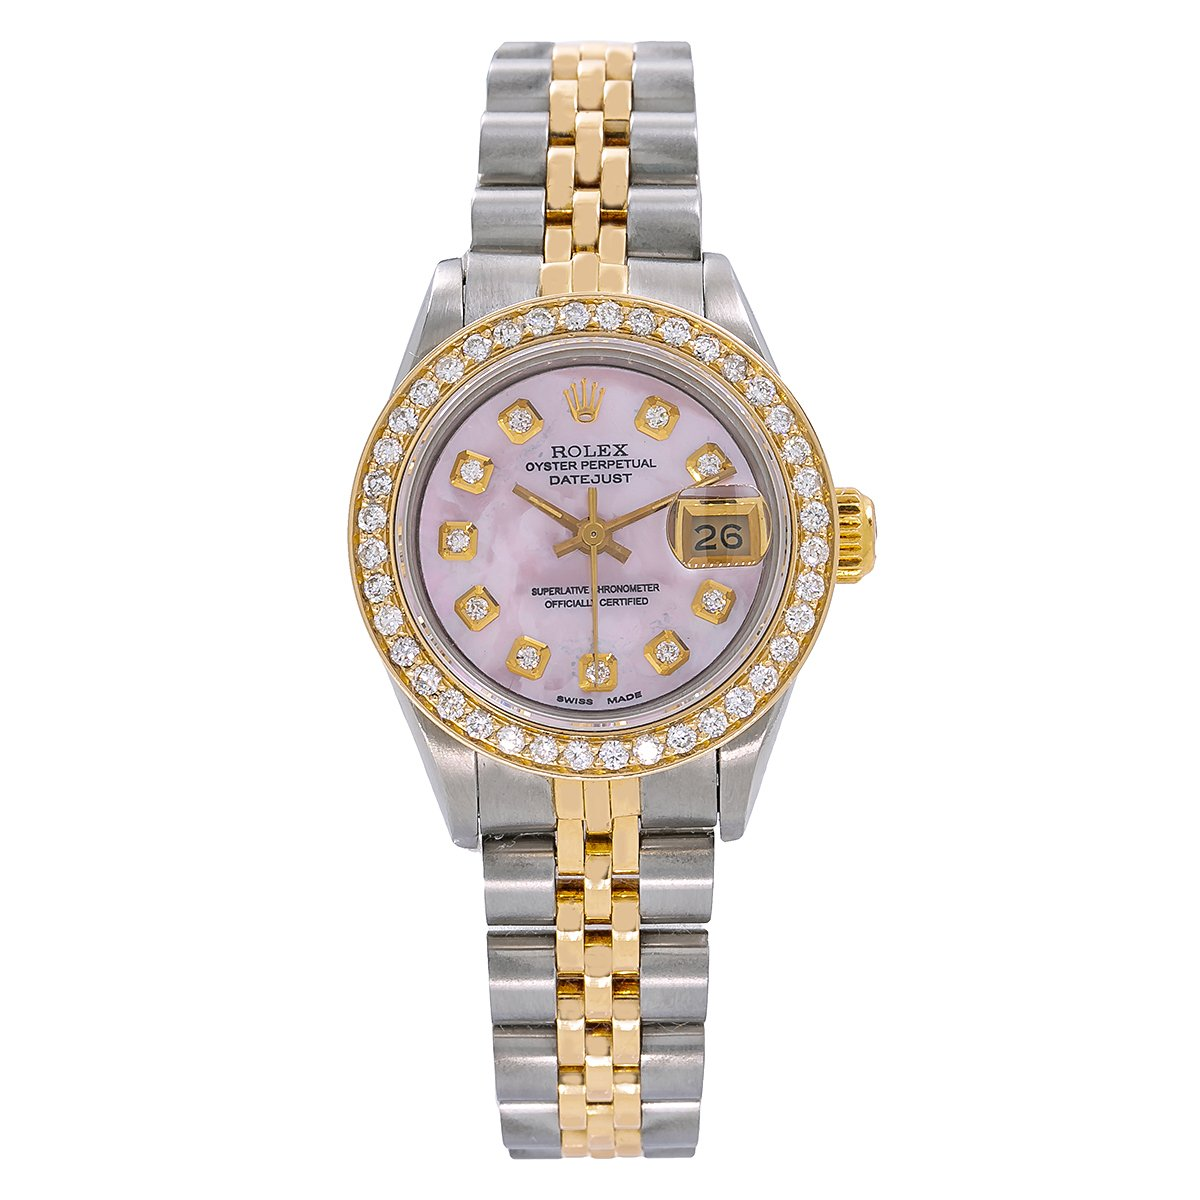 Rolex Datejust Two Tone Diamond Watch, 69173 26mm, Pink Mother of Pearl Dial with 1.3CT Diamond Bezel